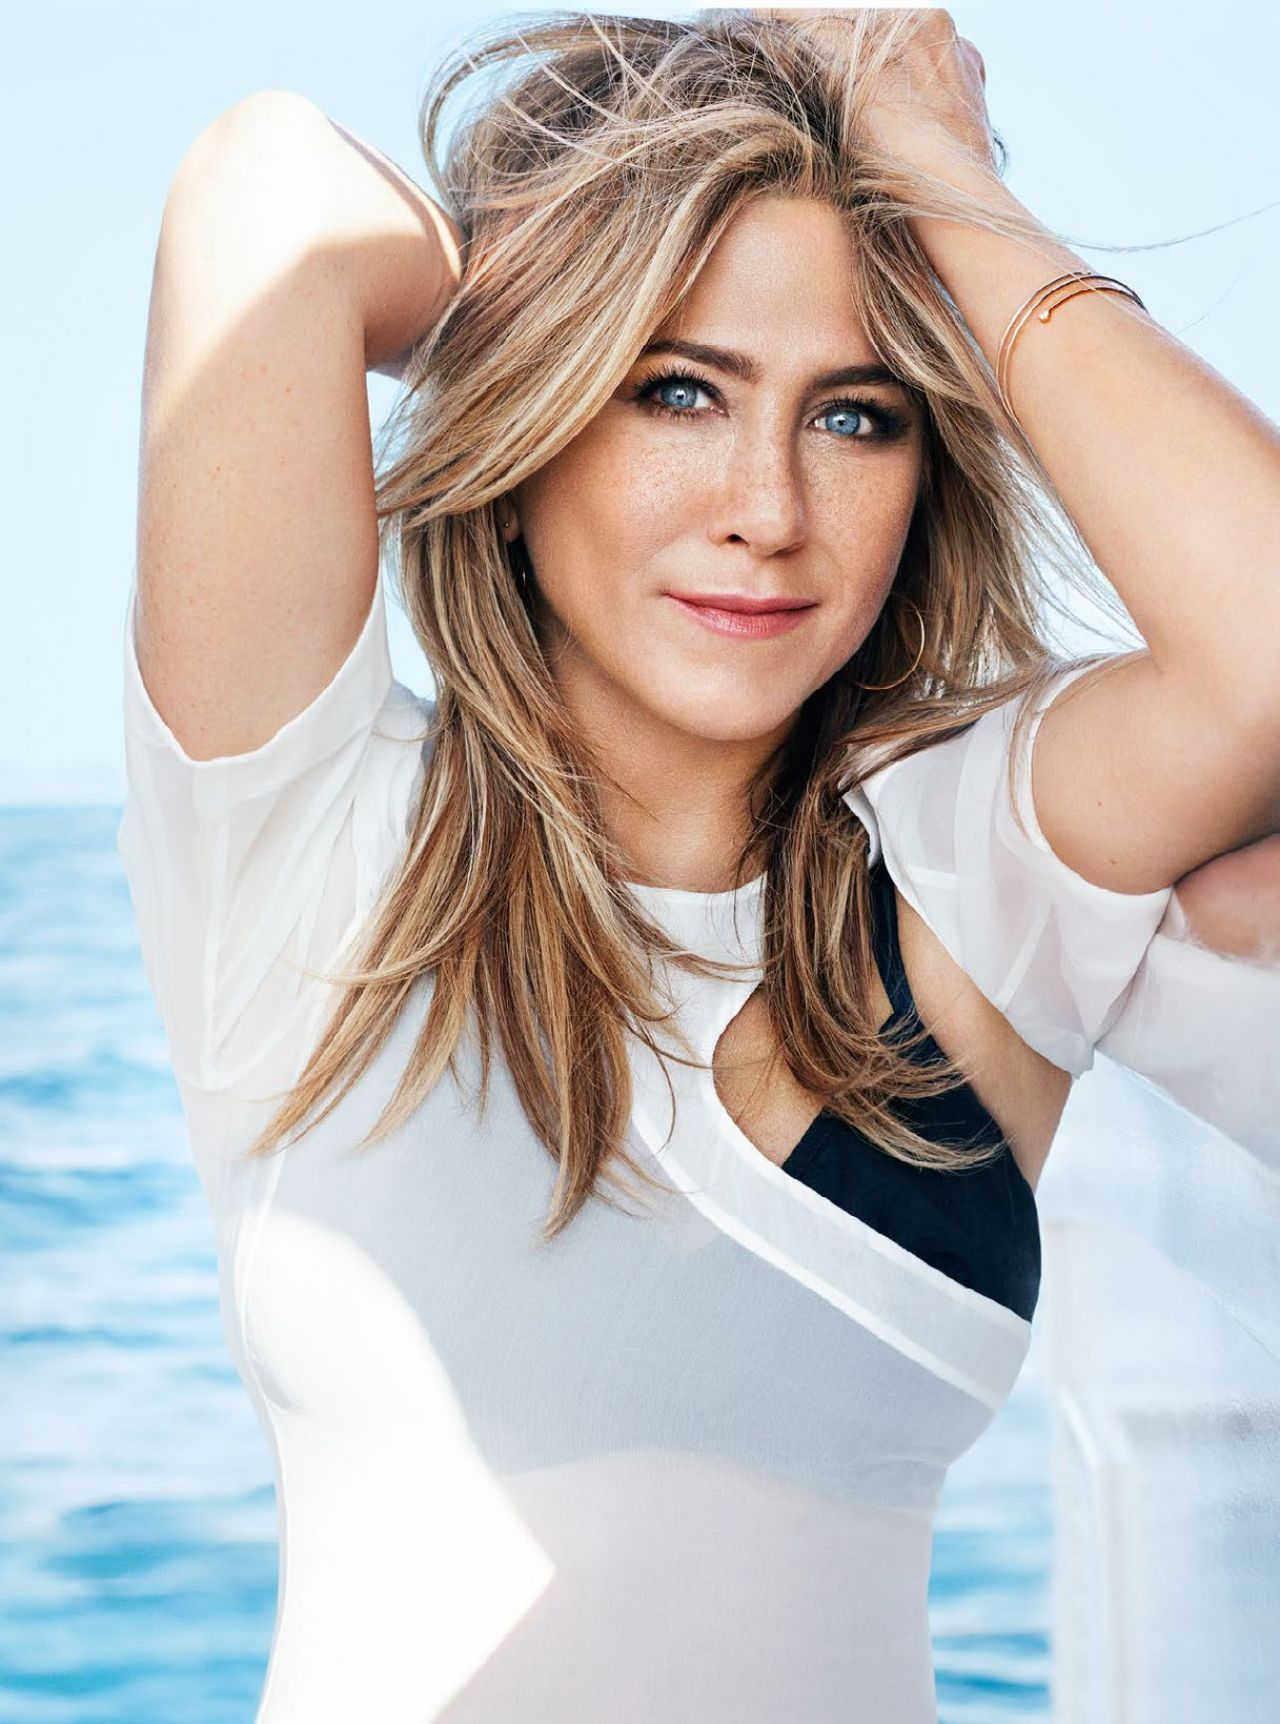 Jennifer Aniston in Marie Claire magazine